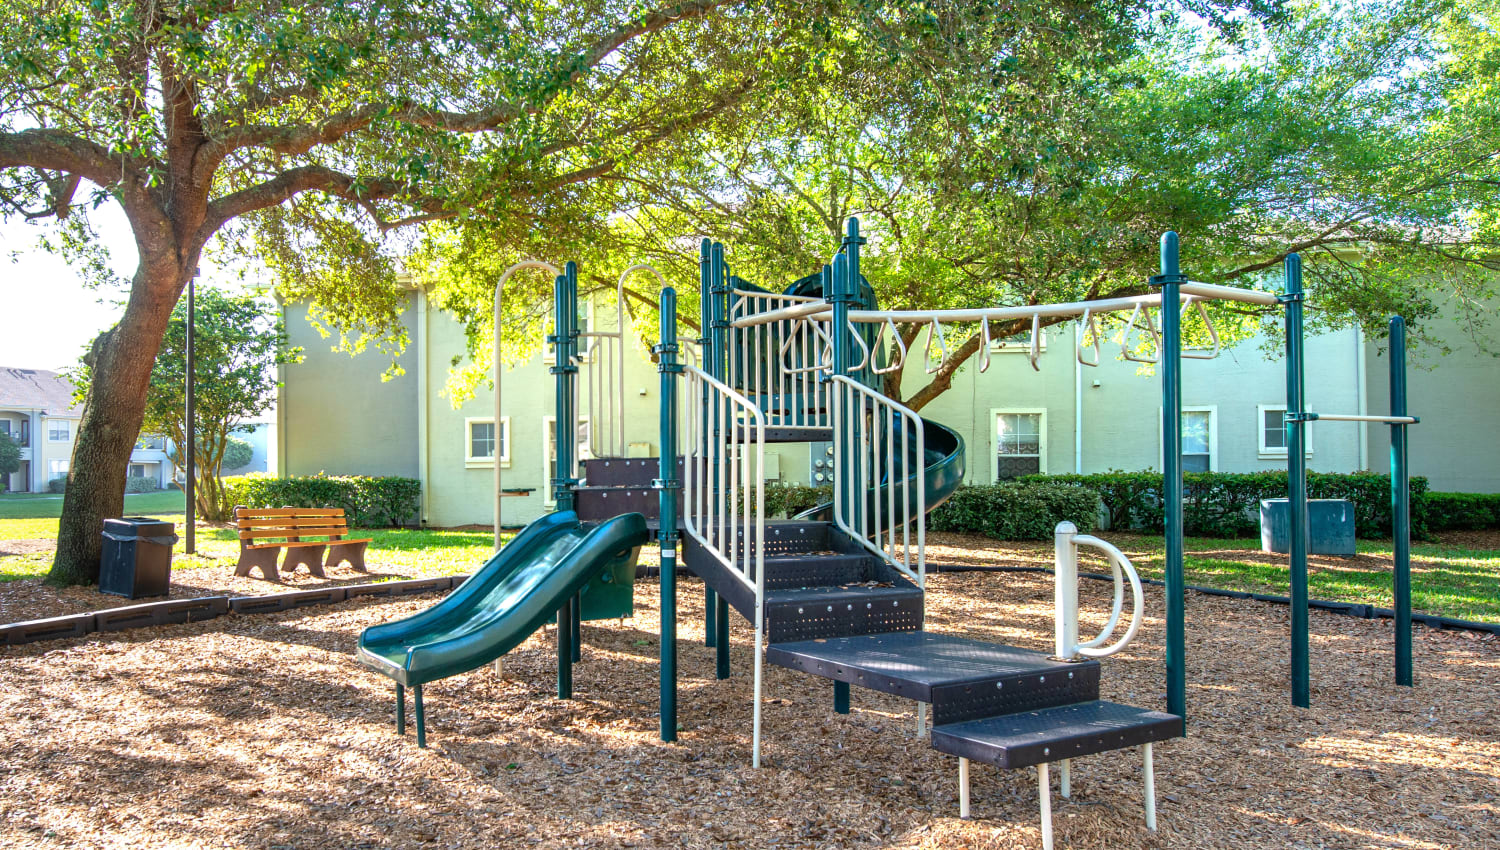 One of the onsite playgrounds at Cape House in Jacksonville, Florida